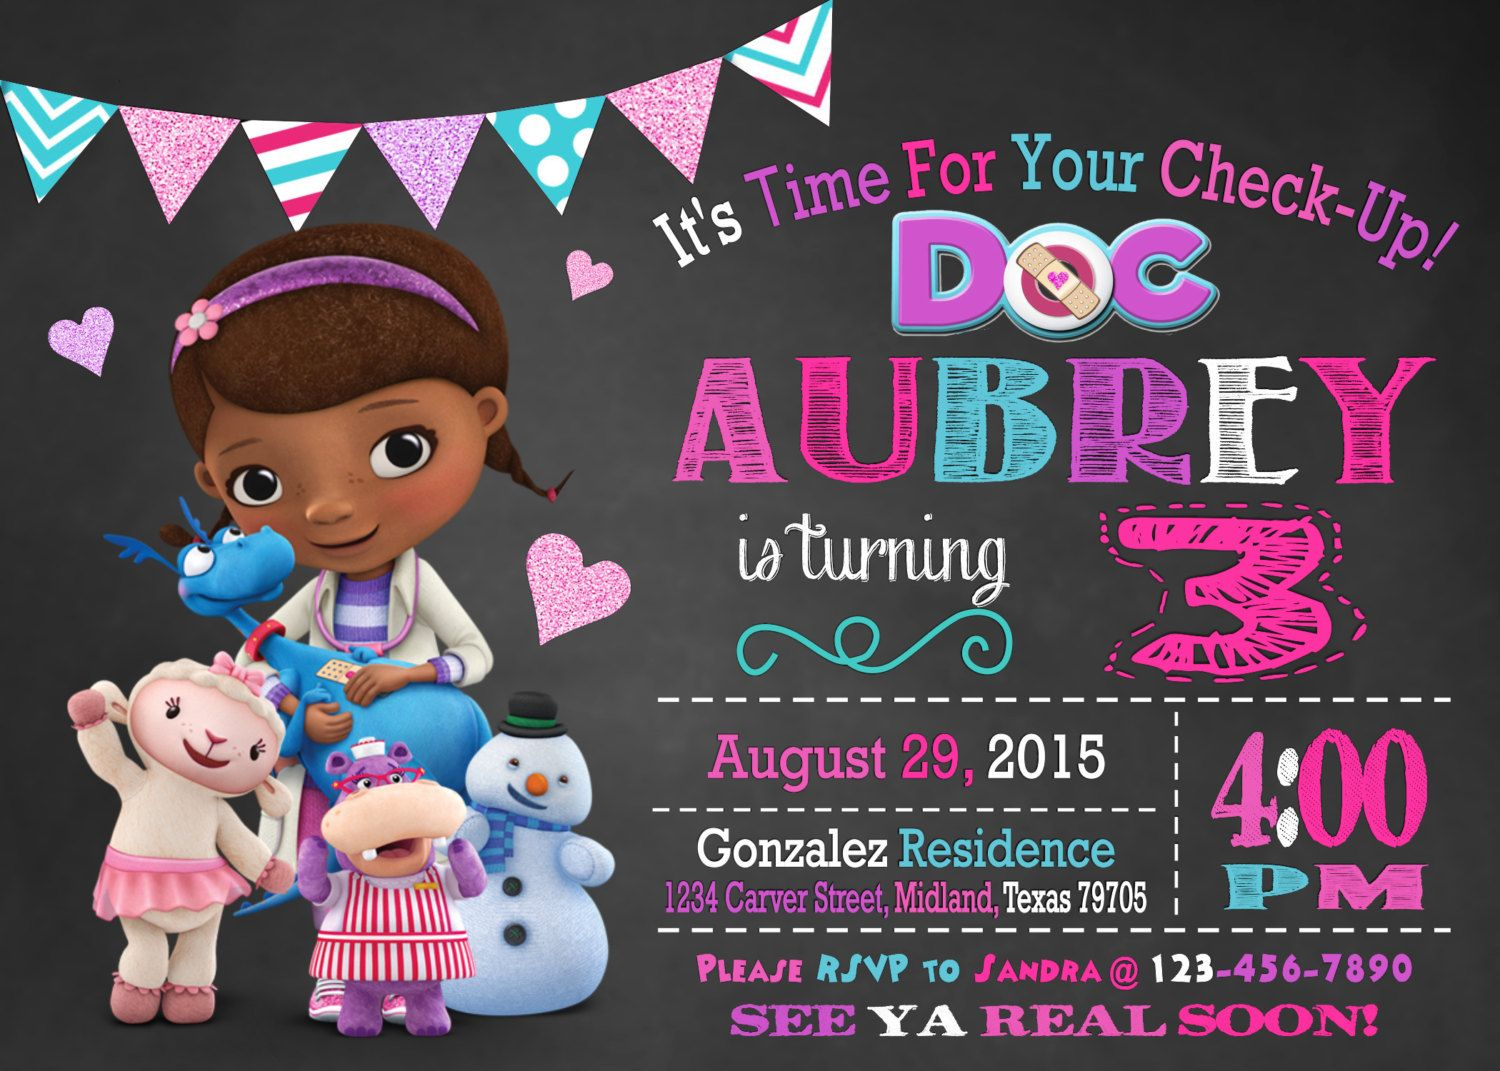 Mcstuffins PlanningIdeasamp; Doc SuppliesDra Birthday Party wN0OPZ8nkX